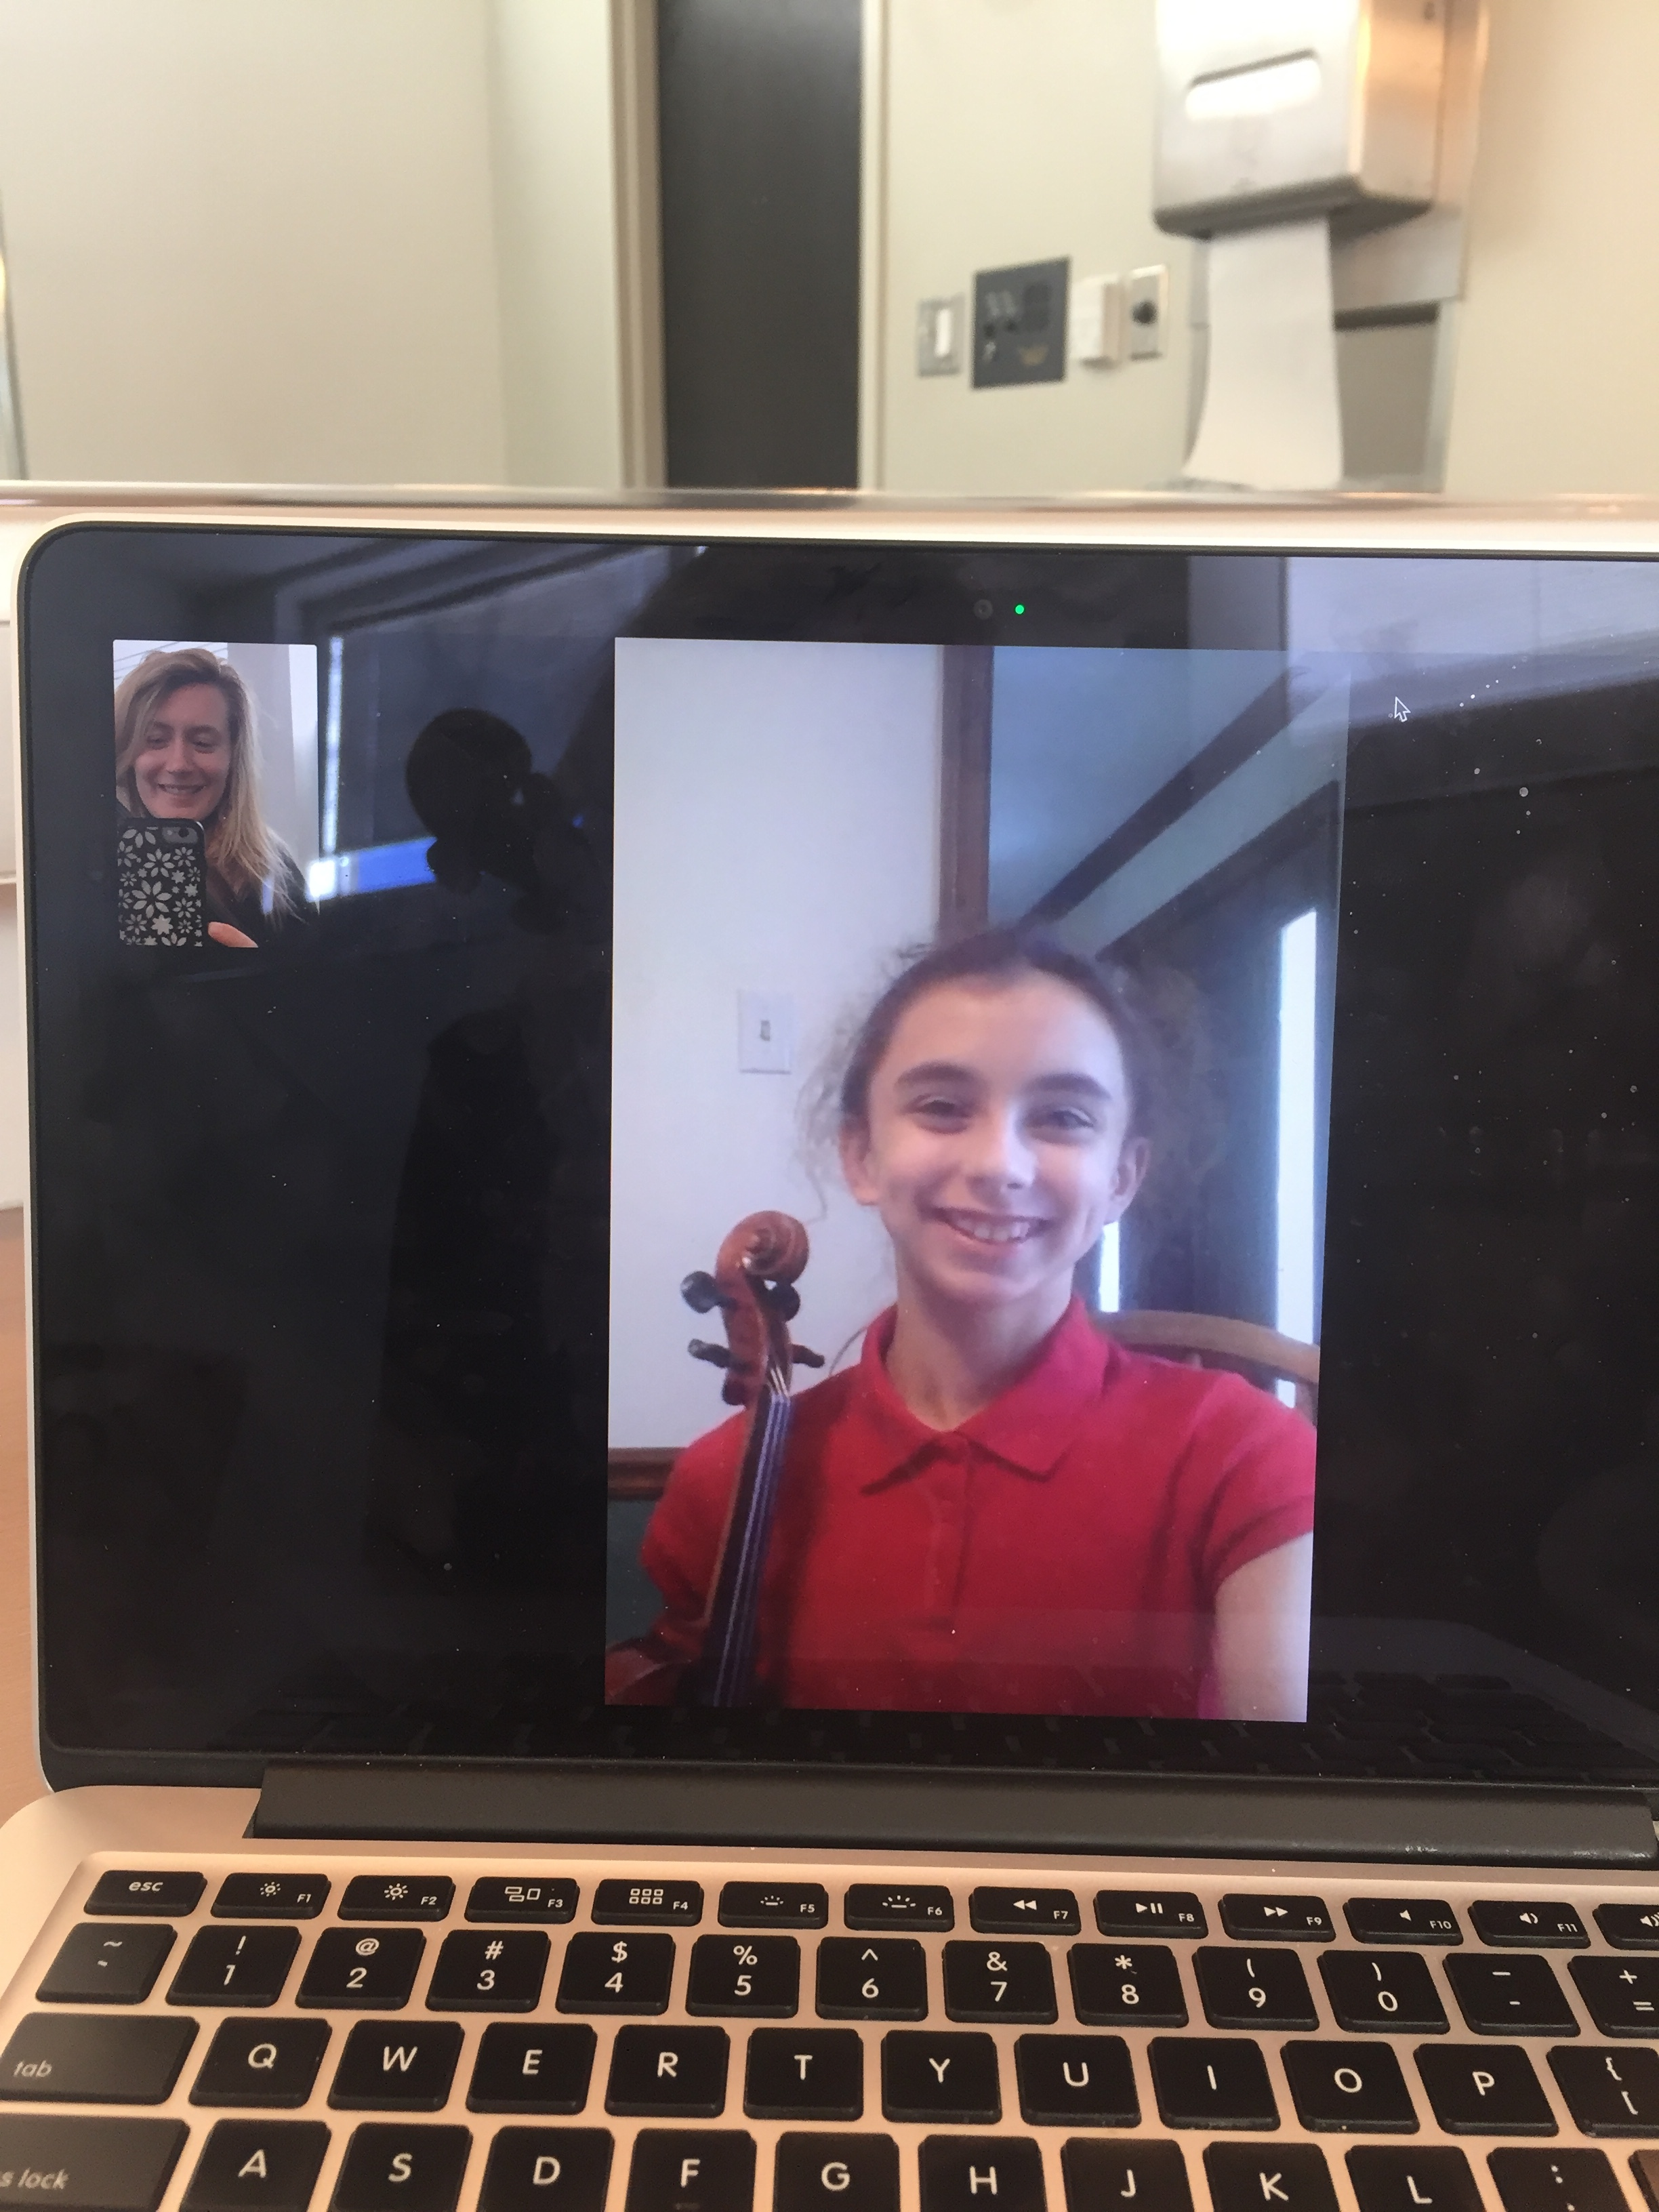 Myself on FaceTime with my young fiddle student, Brianna.